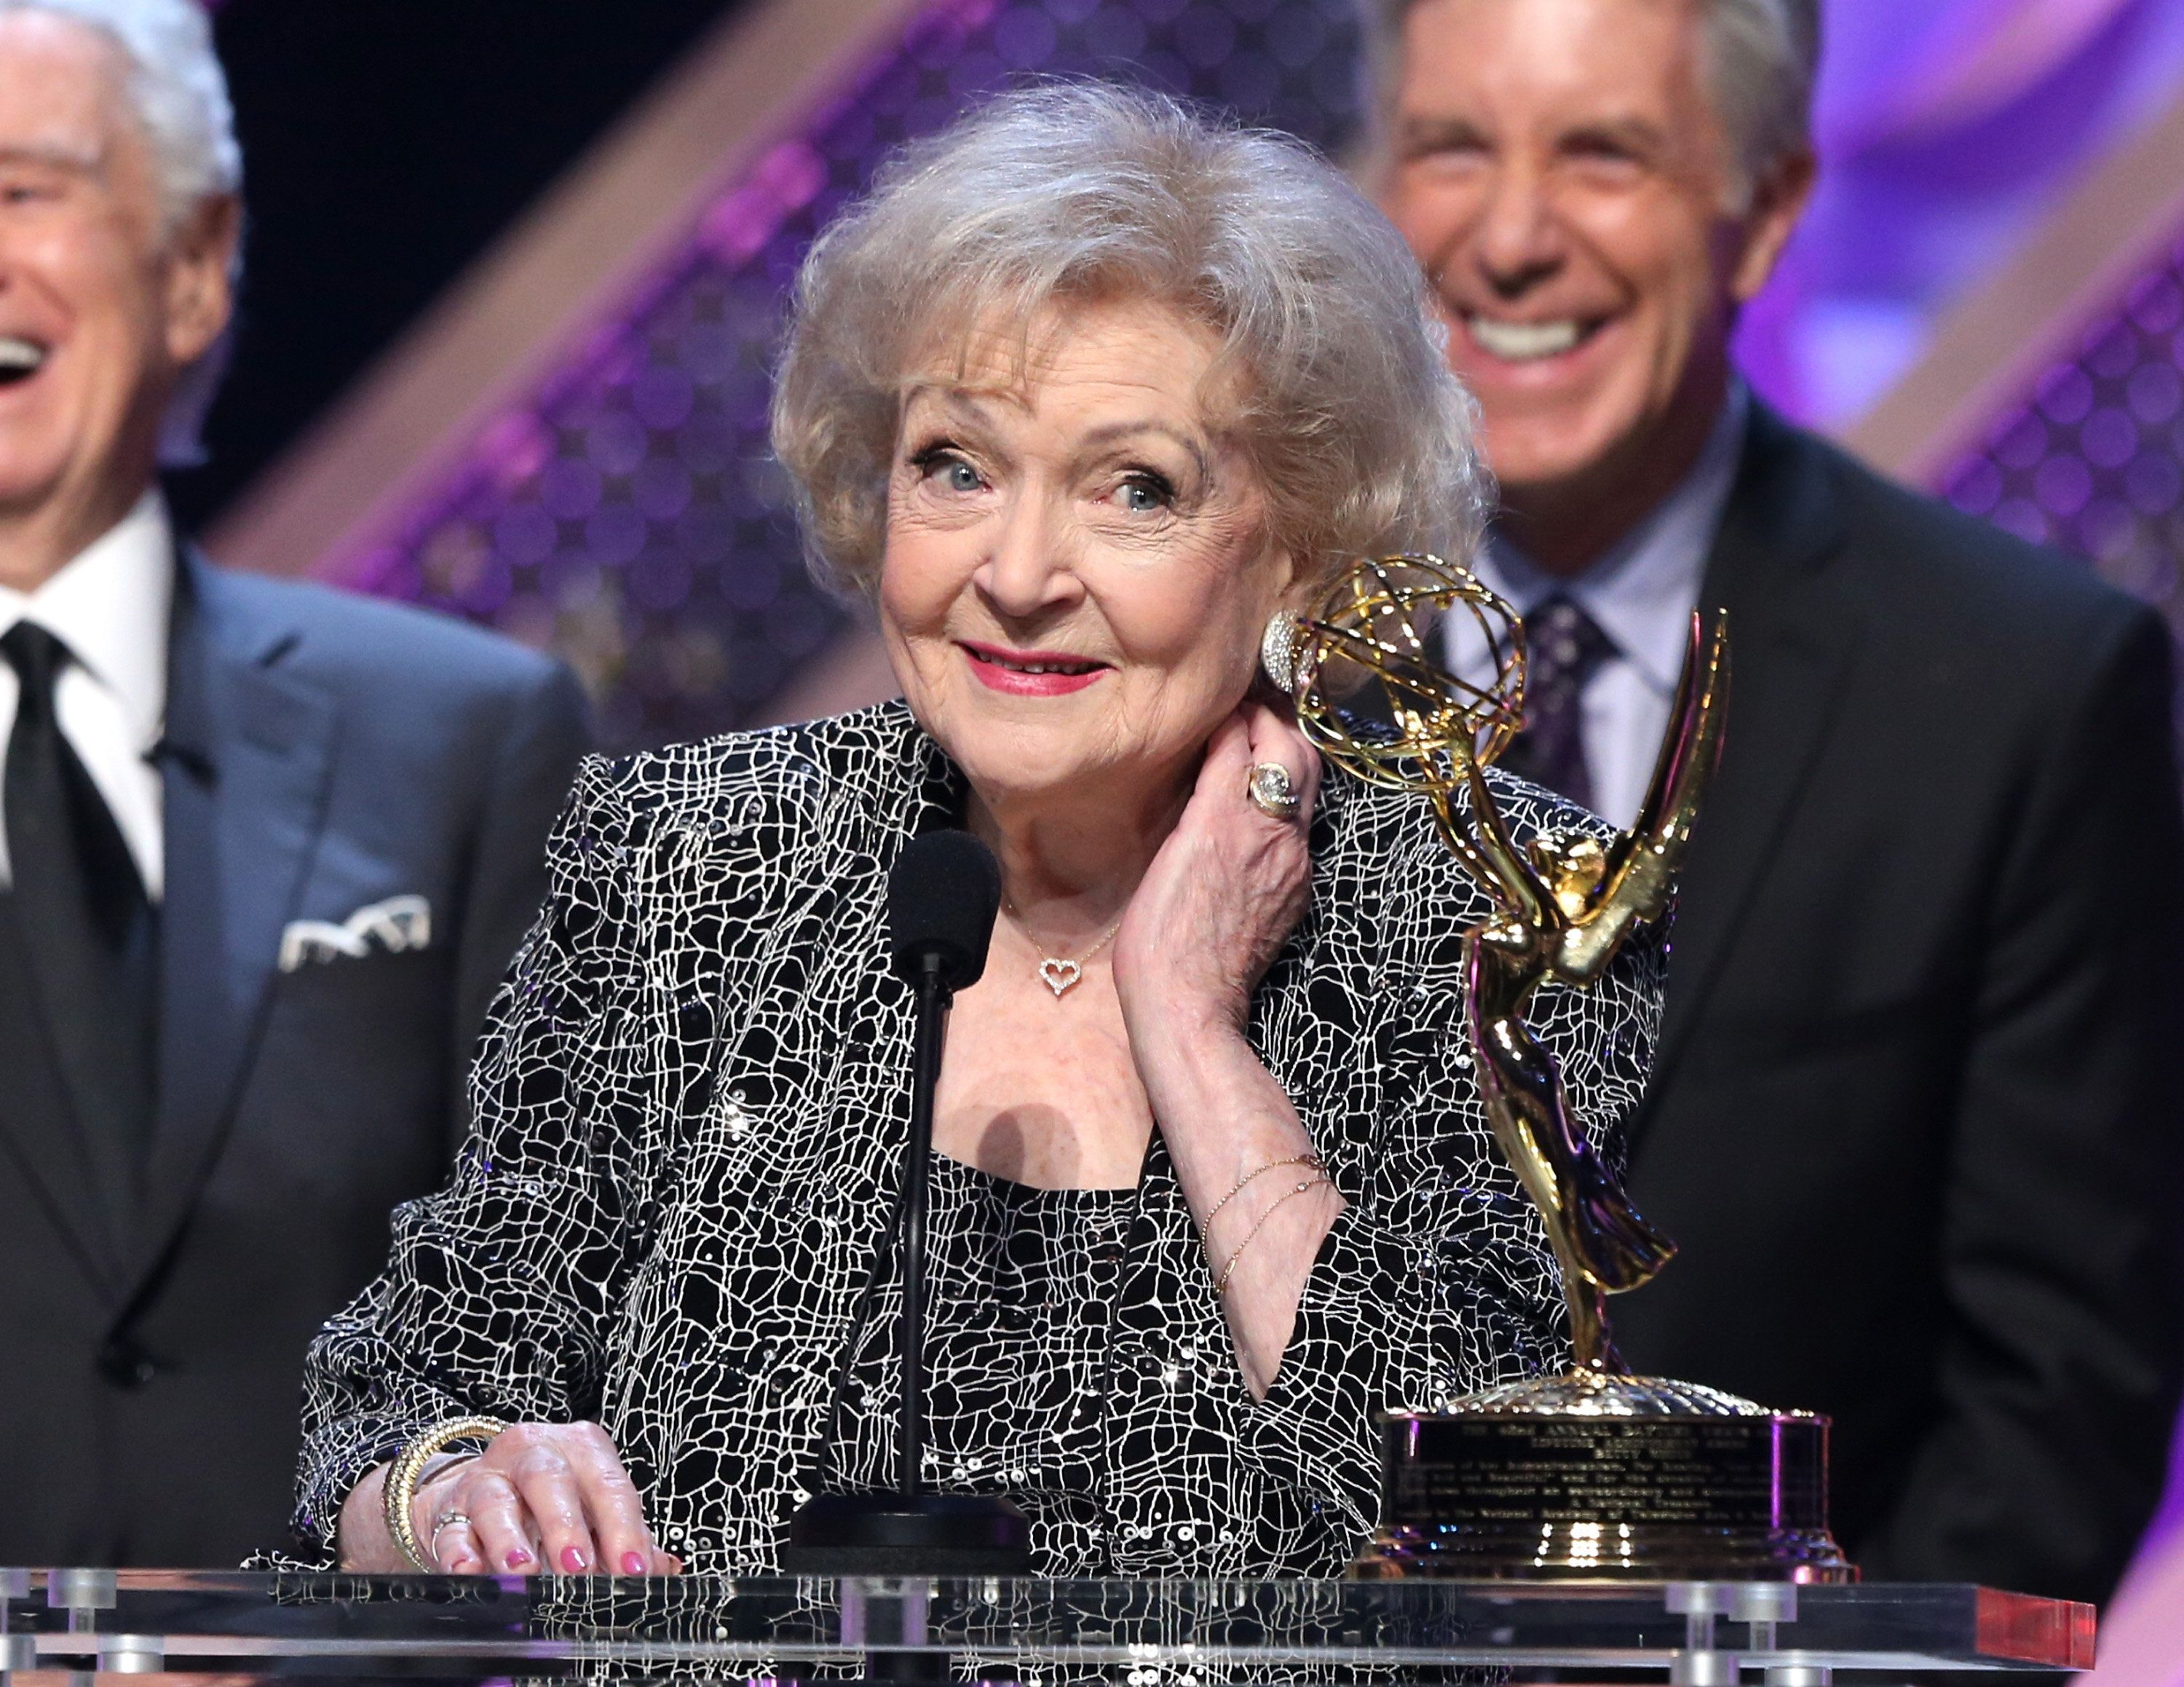 BURBANK, CA - APRIL 26:  Actress Betty White accepts Daytime Emmy Lifetime Achievement Award onstage during The 42nd Annual Daytime Emmy Awards at Warner Bros. Studios on April 26, 2015 in Burbank, California.  (Photo by Jesse Grant/Getty Images for NATAS)